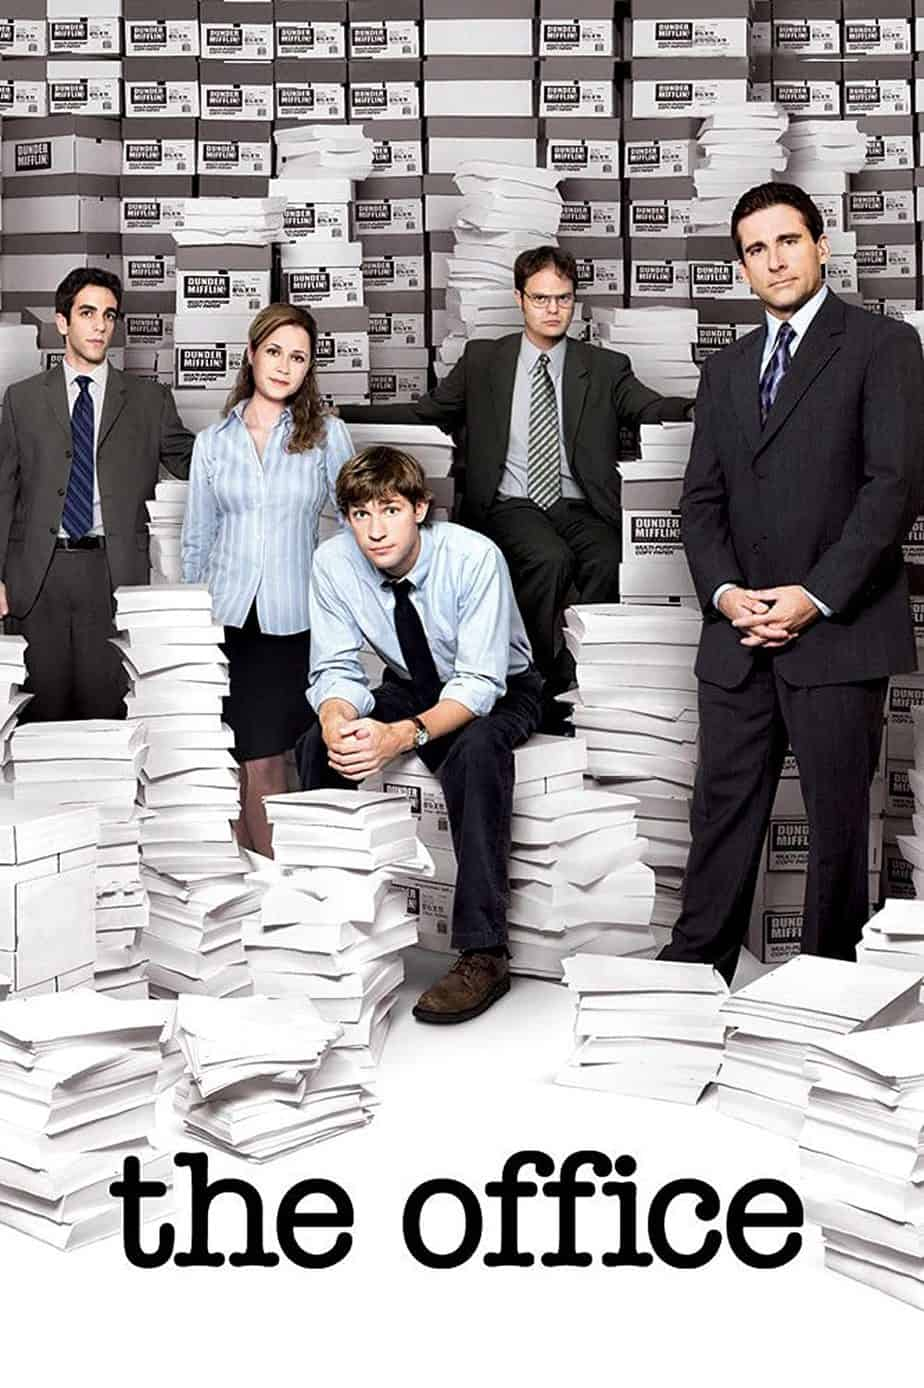 Best TV Series Of All Time- The Office